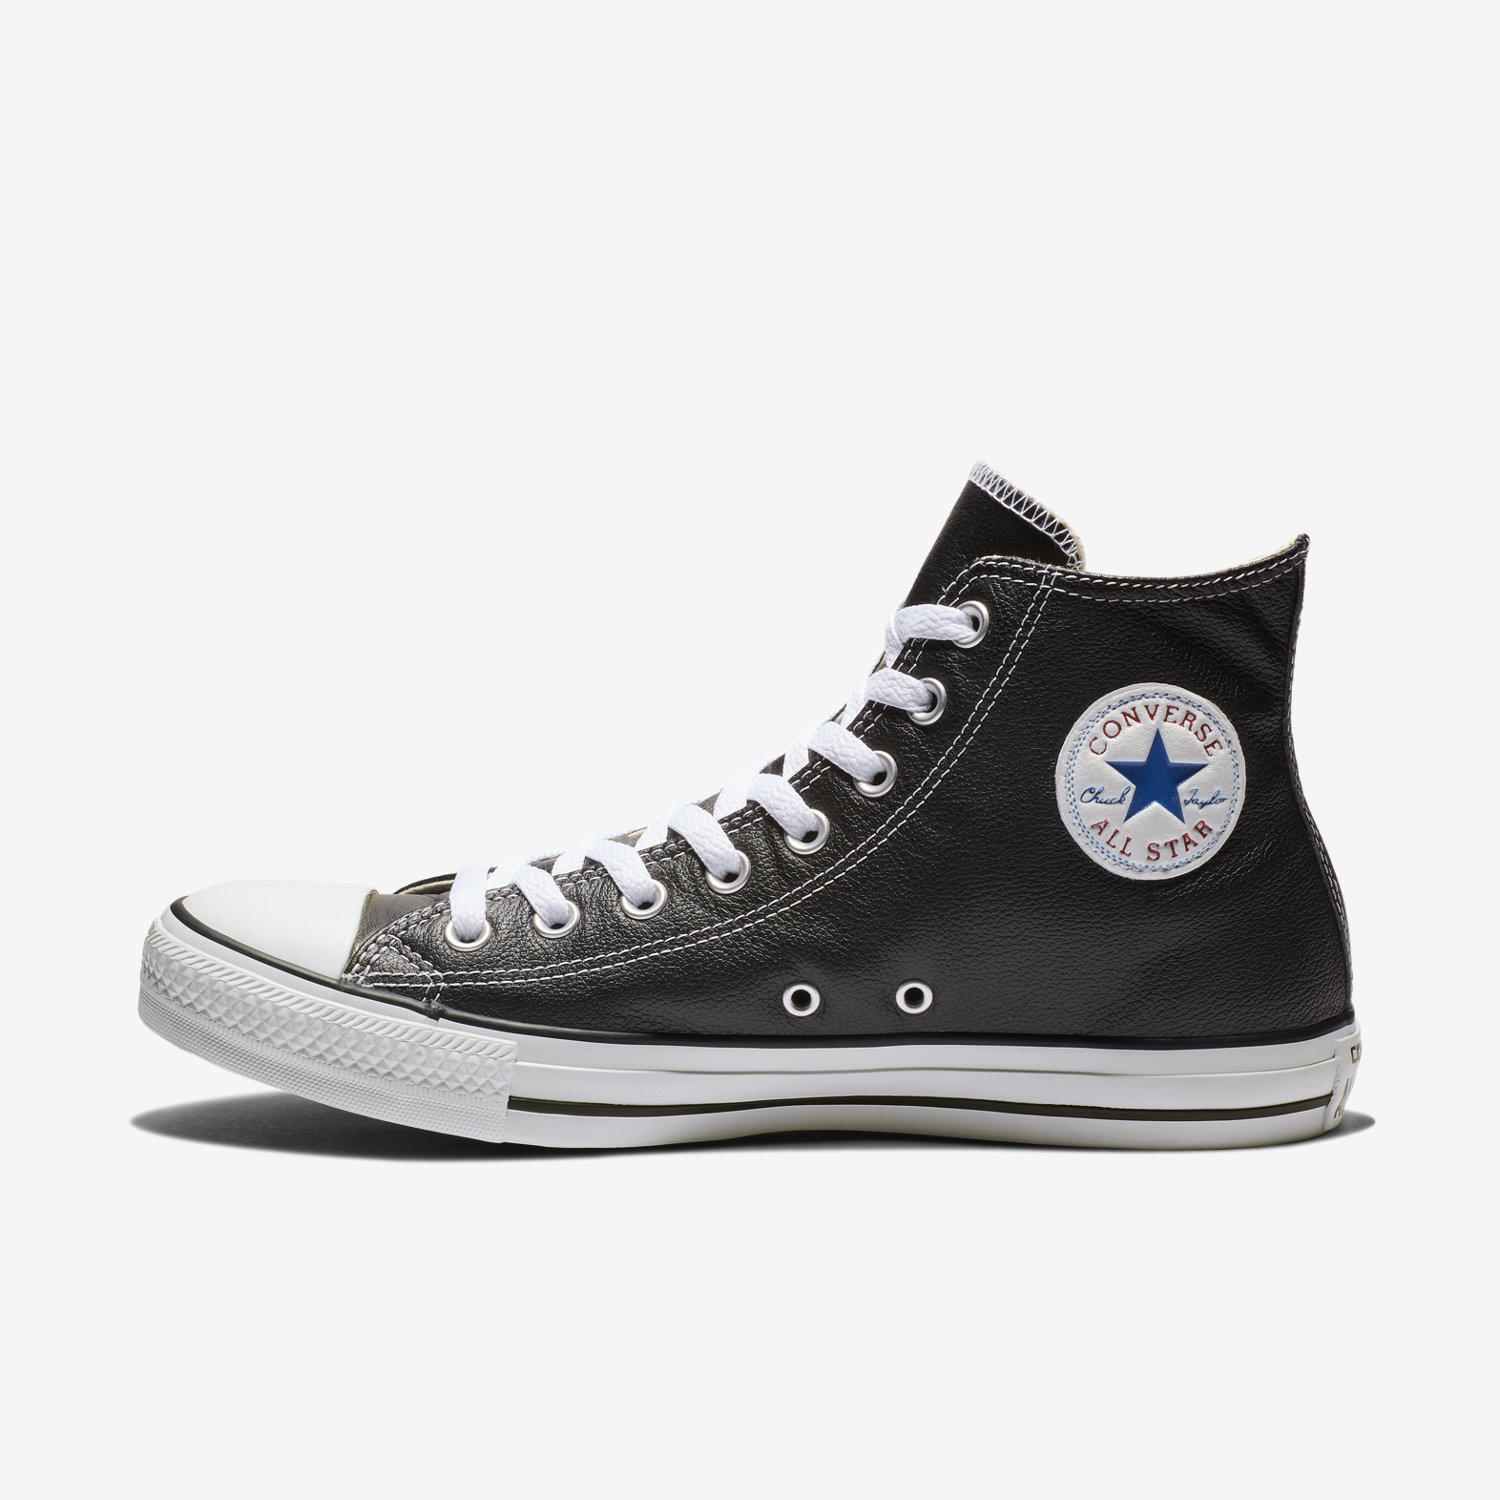 Chuck Taylor All Star Hi VHN24n2l